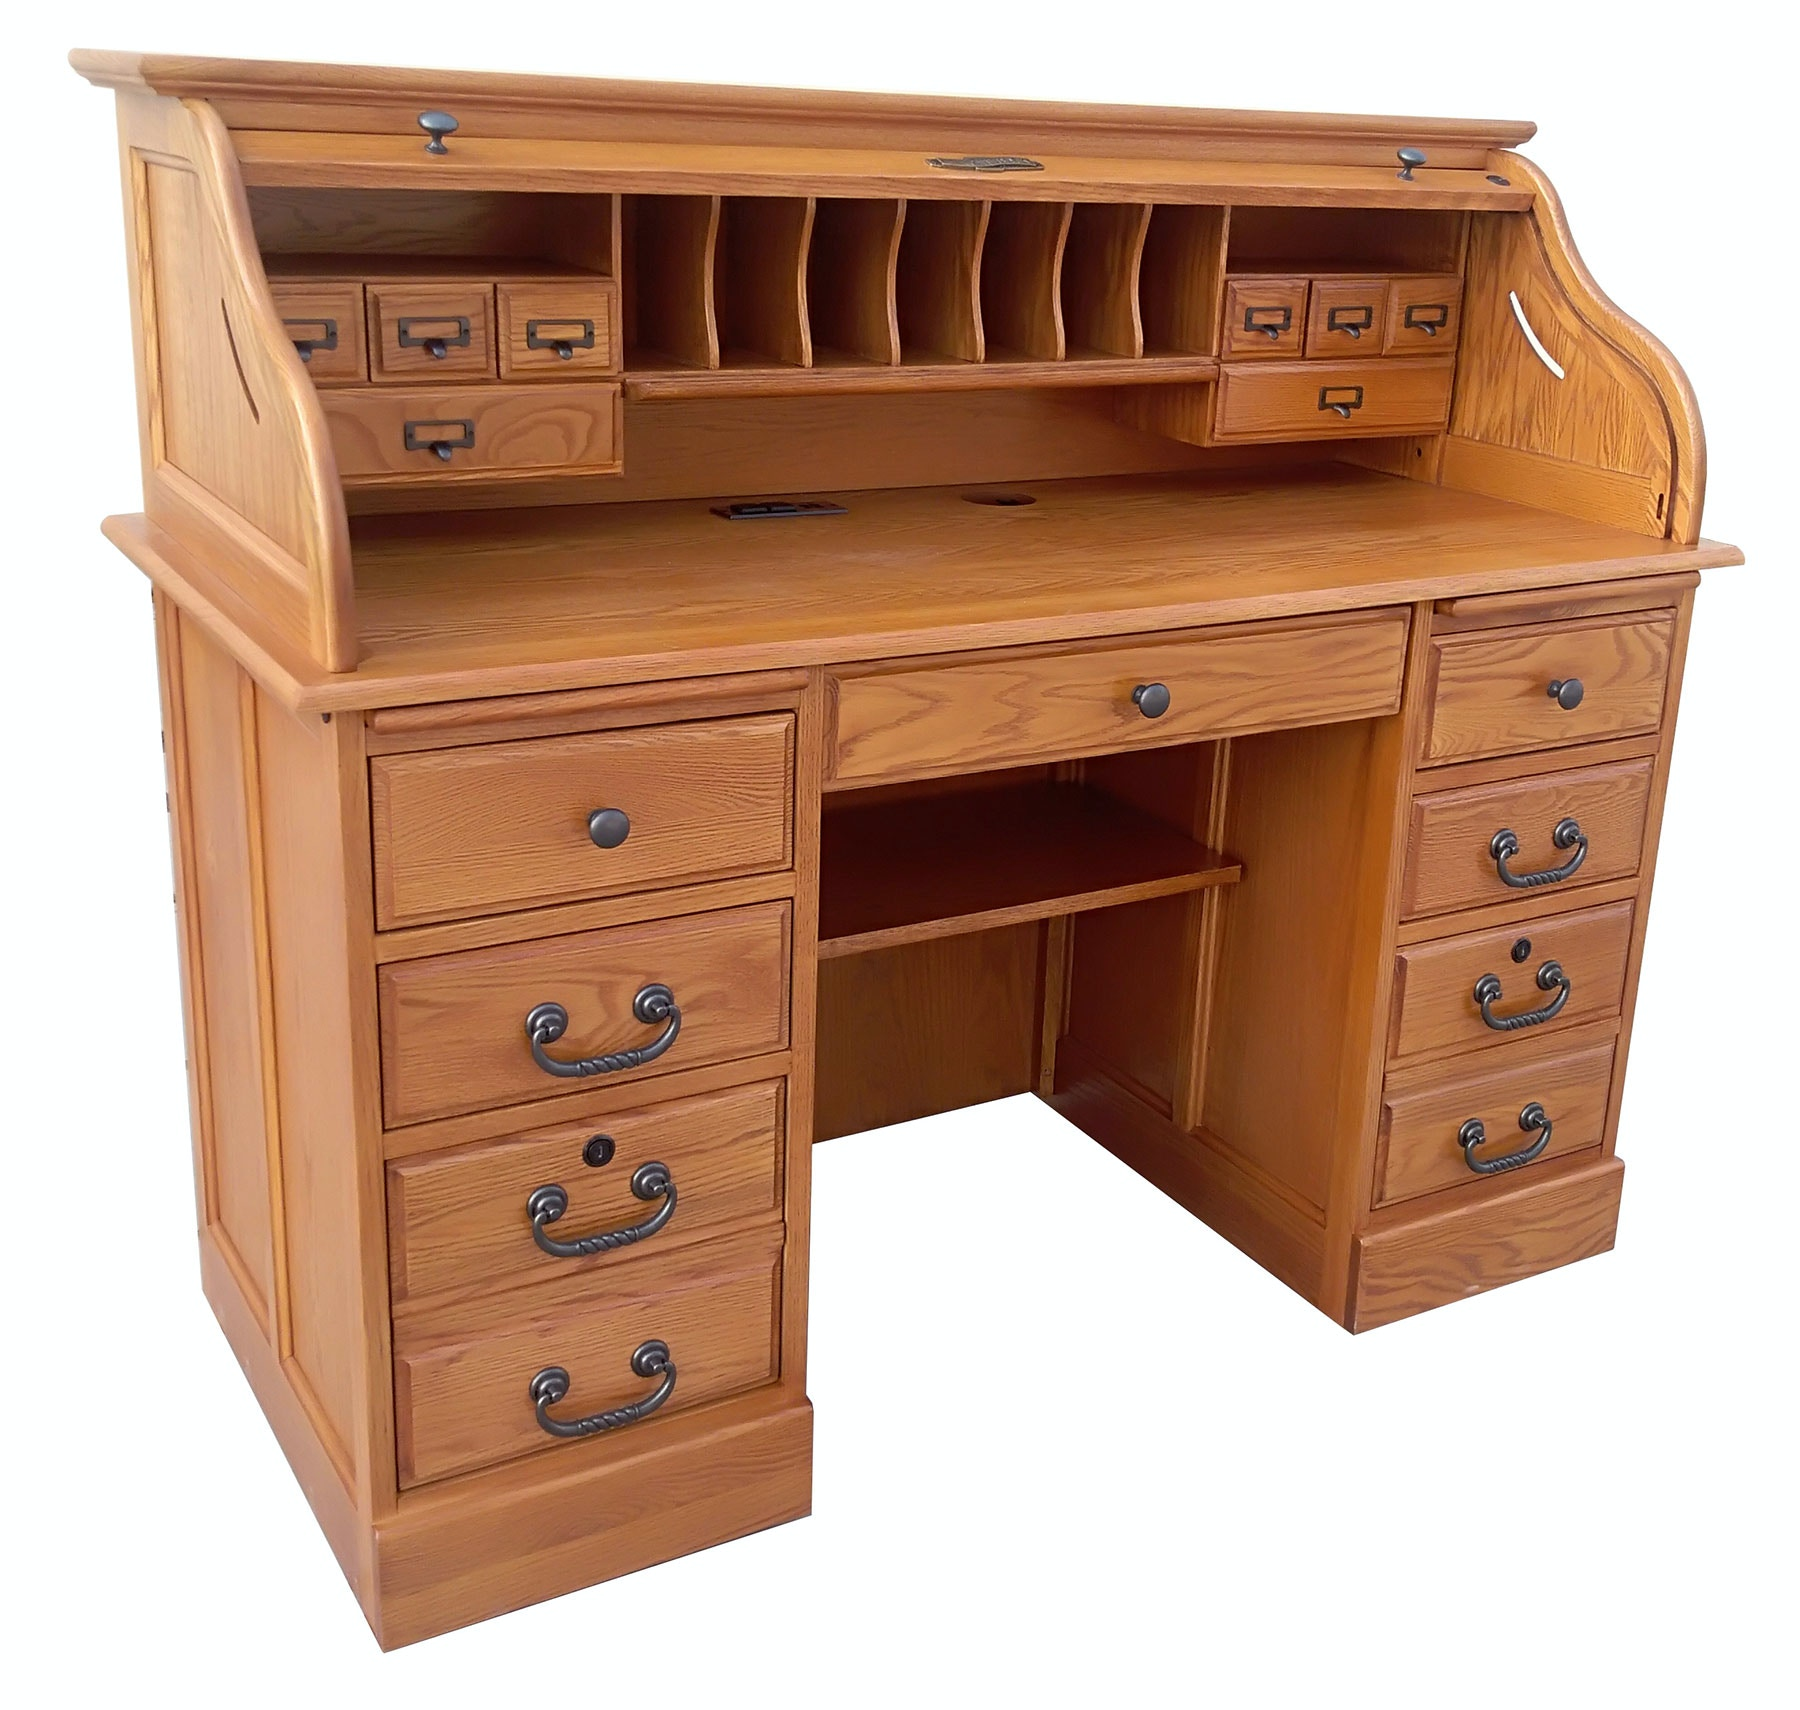 Tennessee Enterprises Home Office 54 Inches Roll Top Desk 8951H At Lynchs  Furniture Auburn